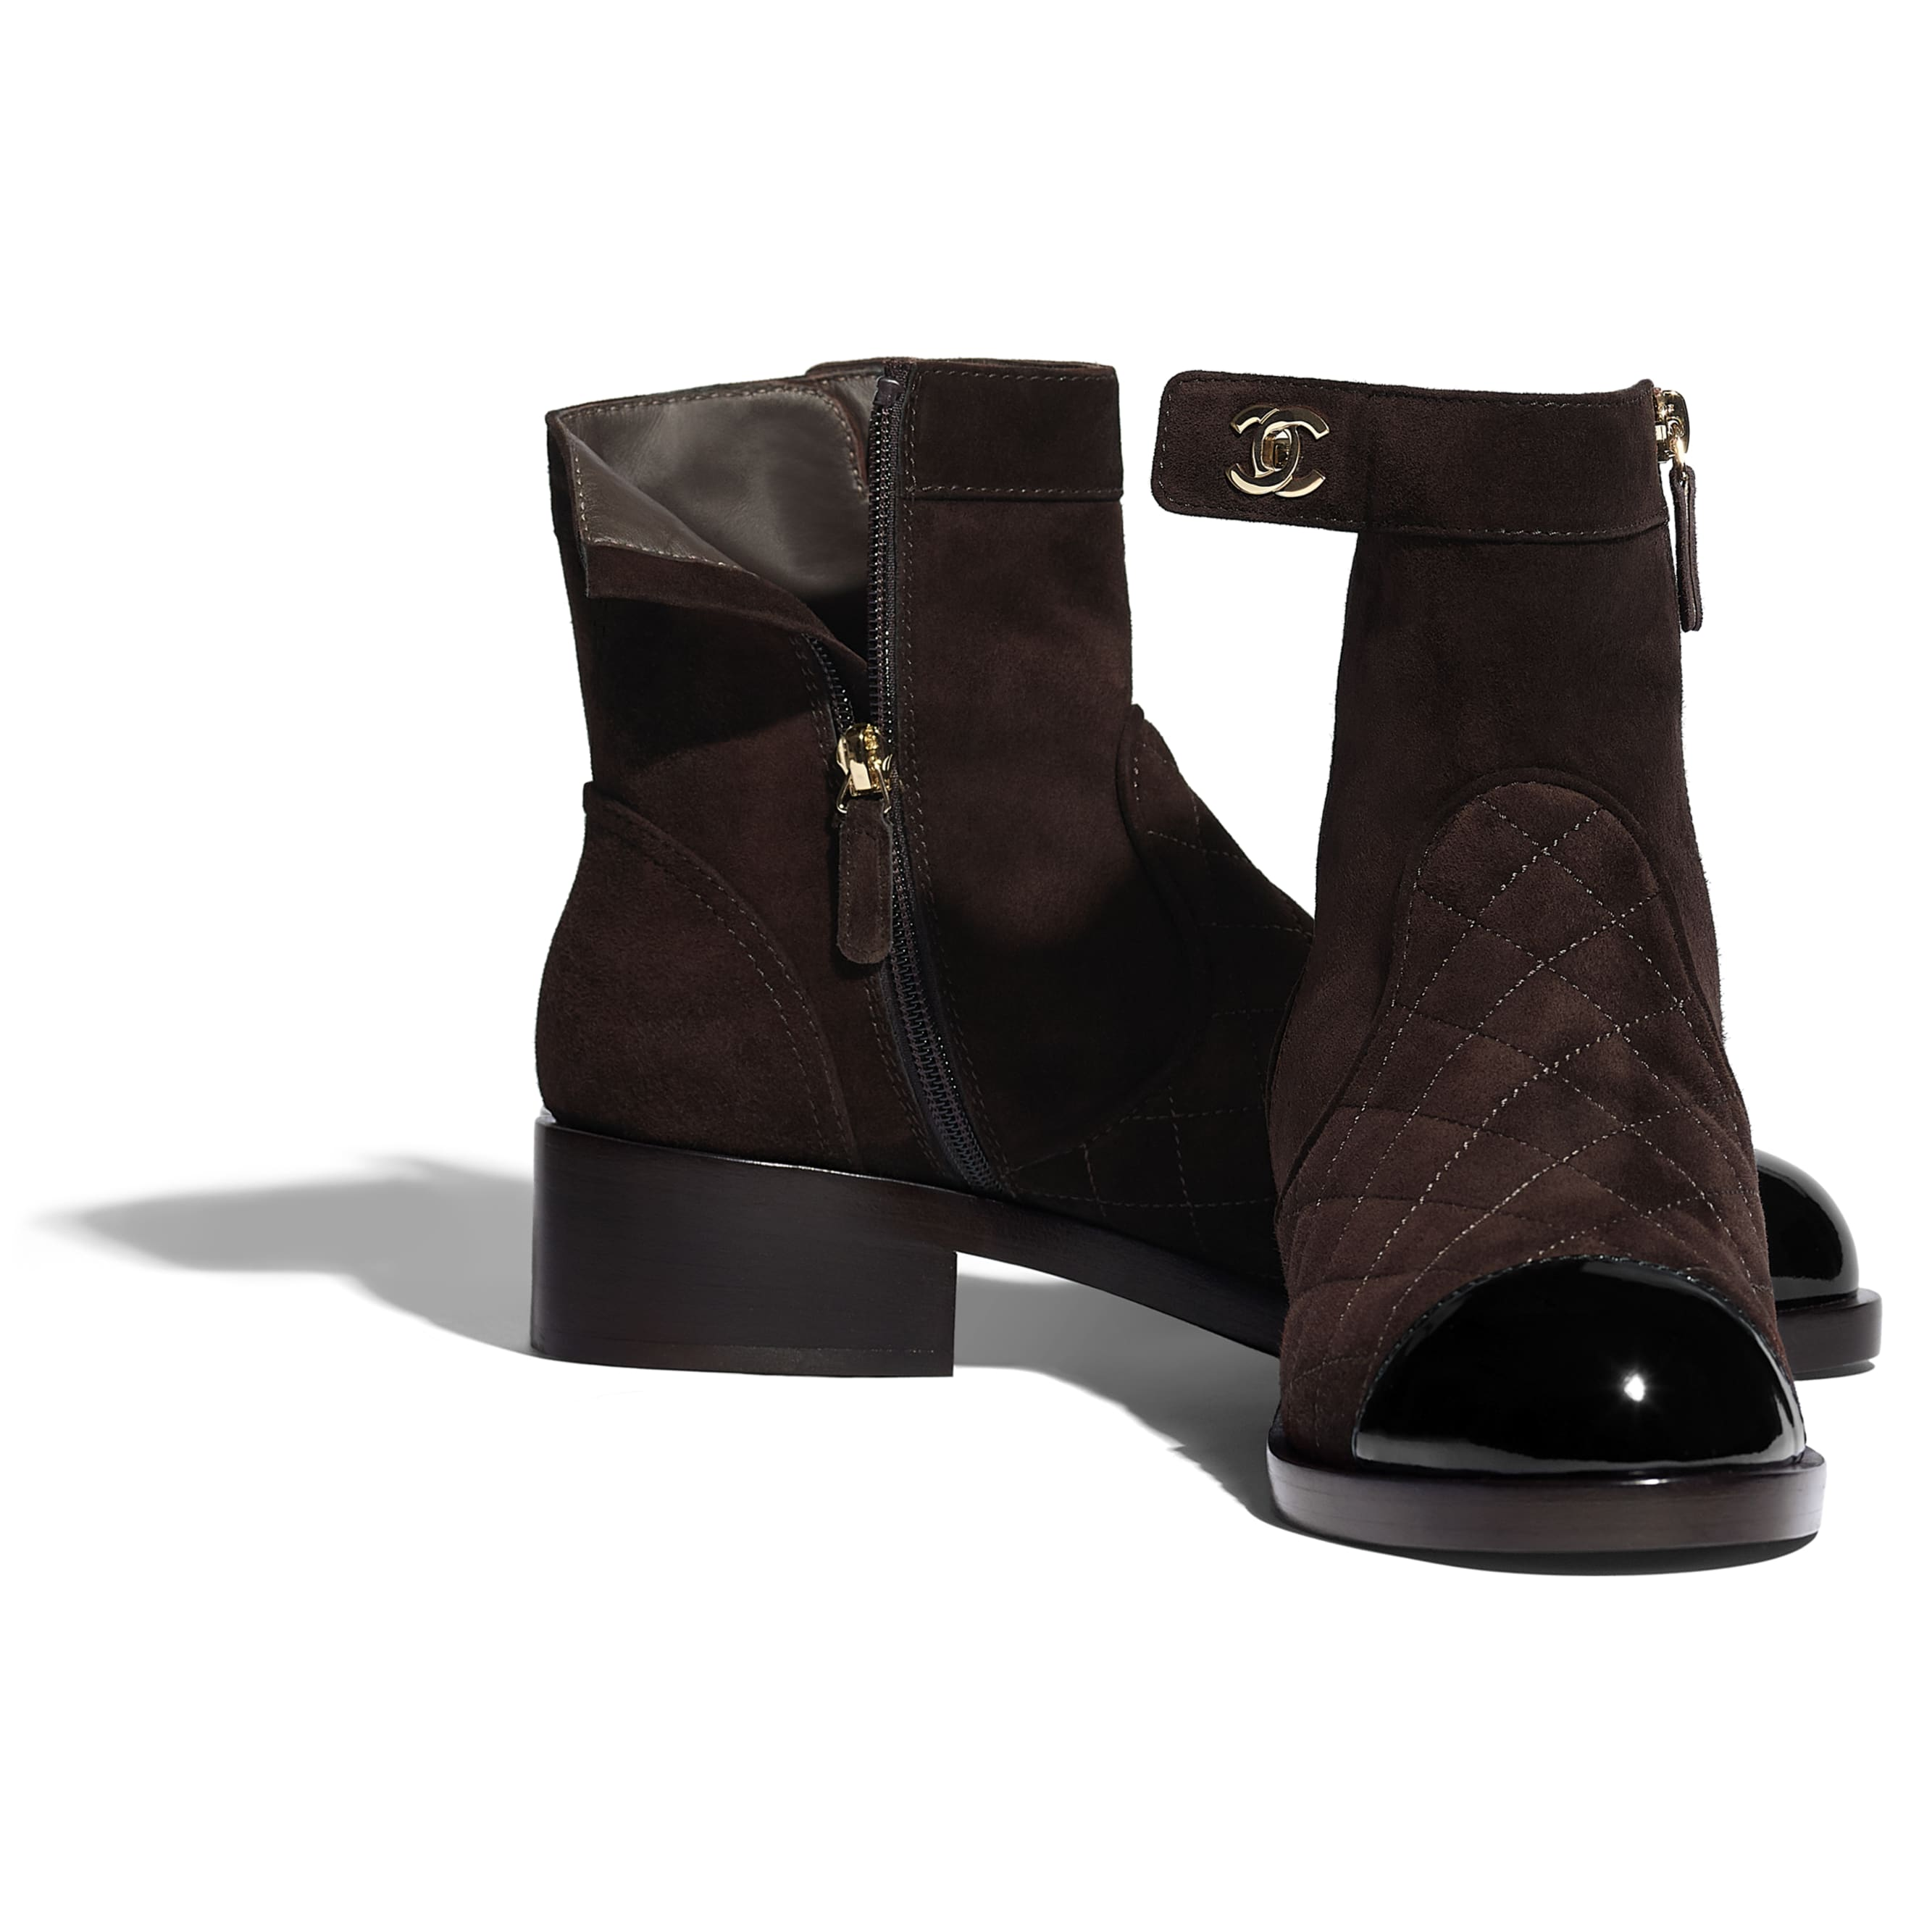 Ankle Boots - Brown & Black - Suede Calfskin & Patent Calfskin - CHANEL - Extra view - see standard sized version